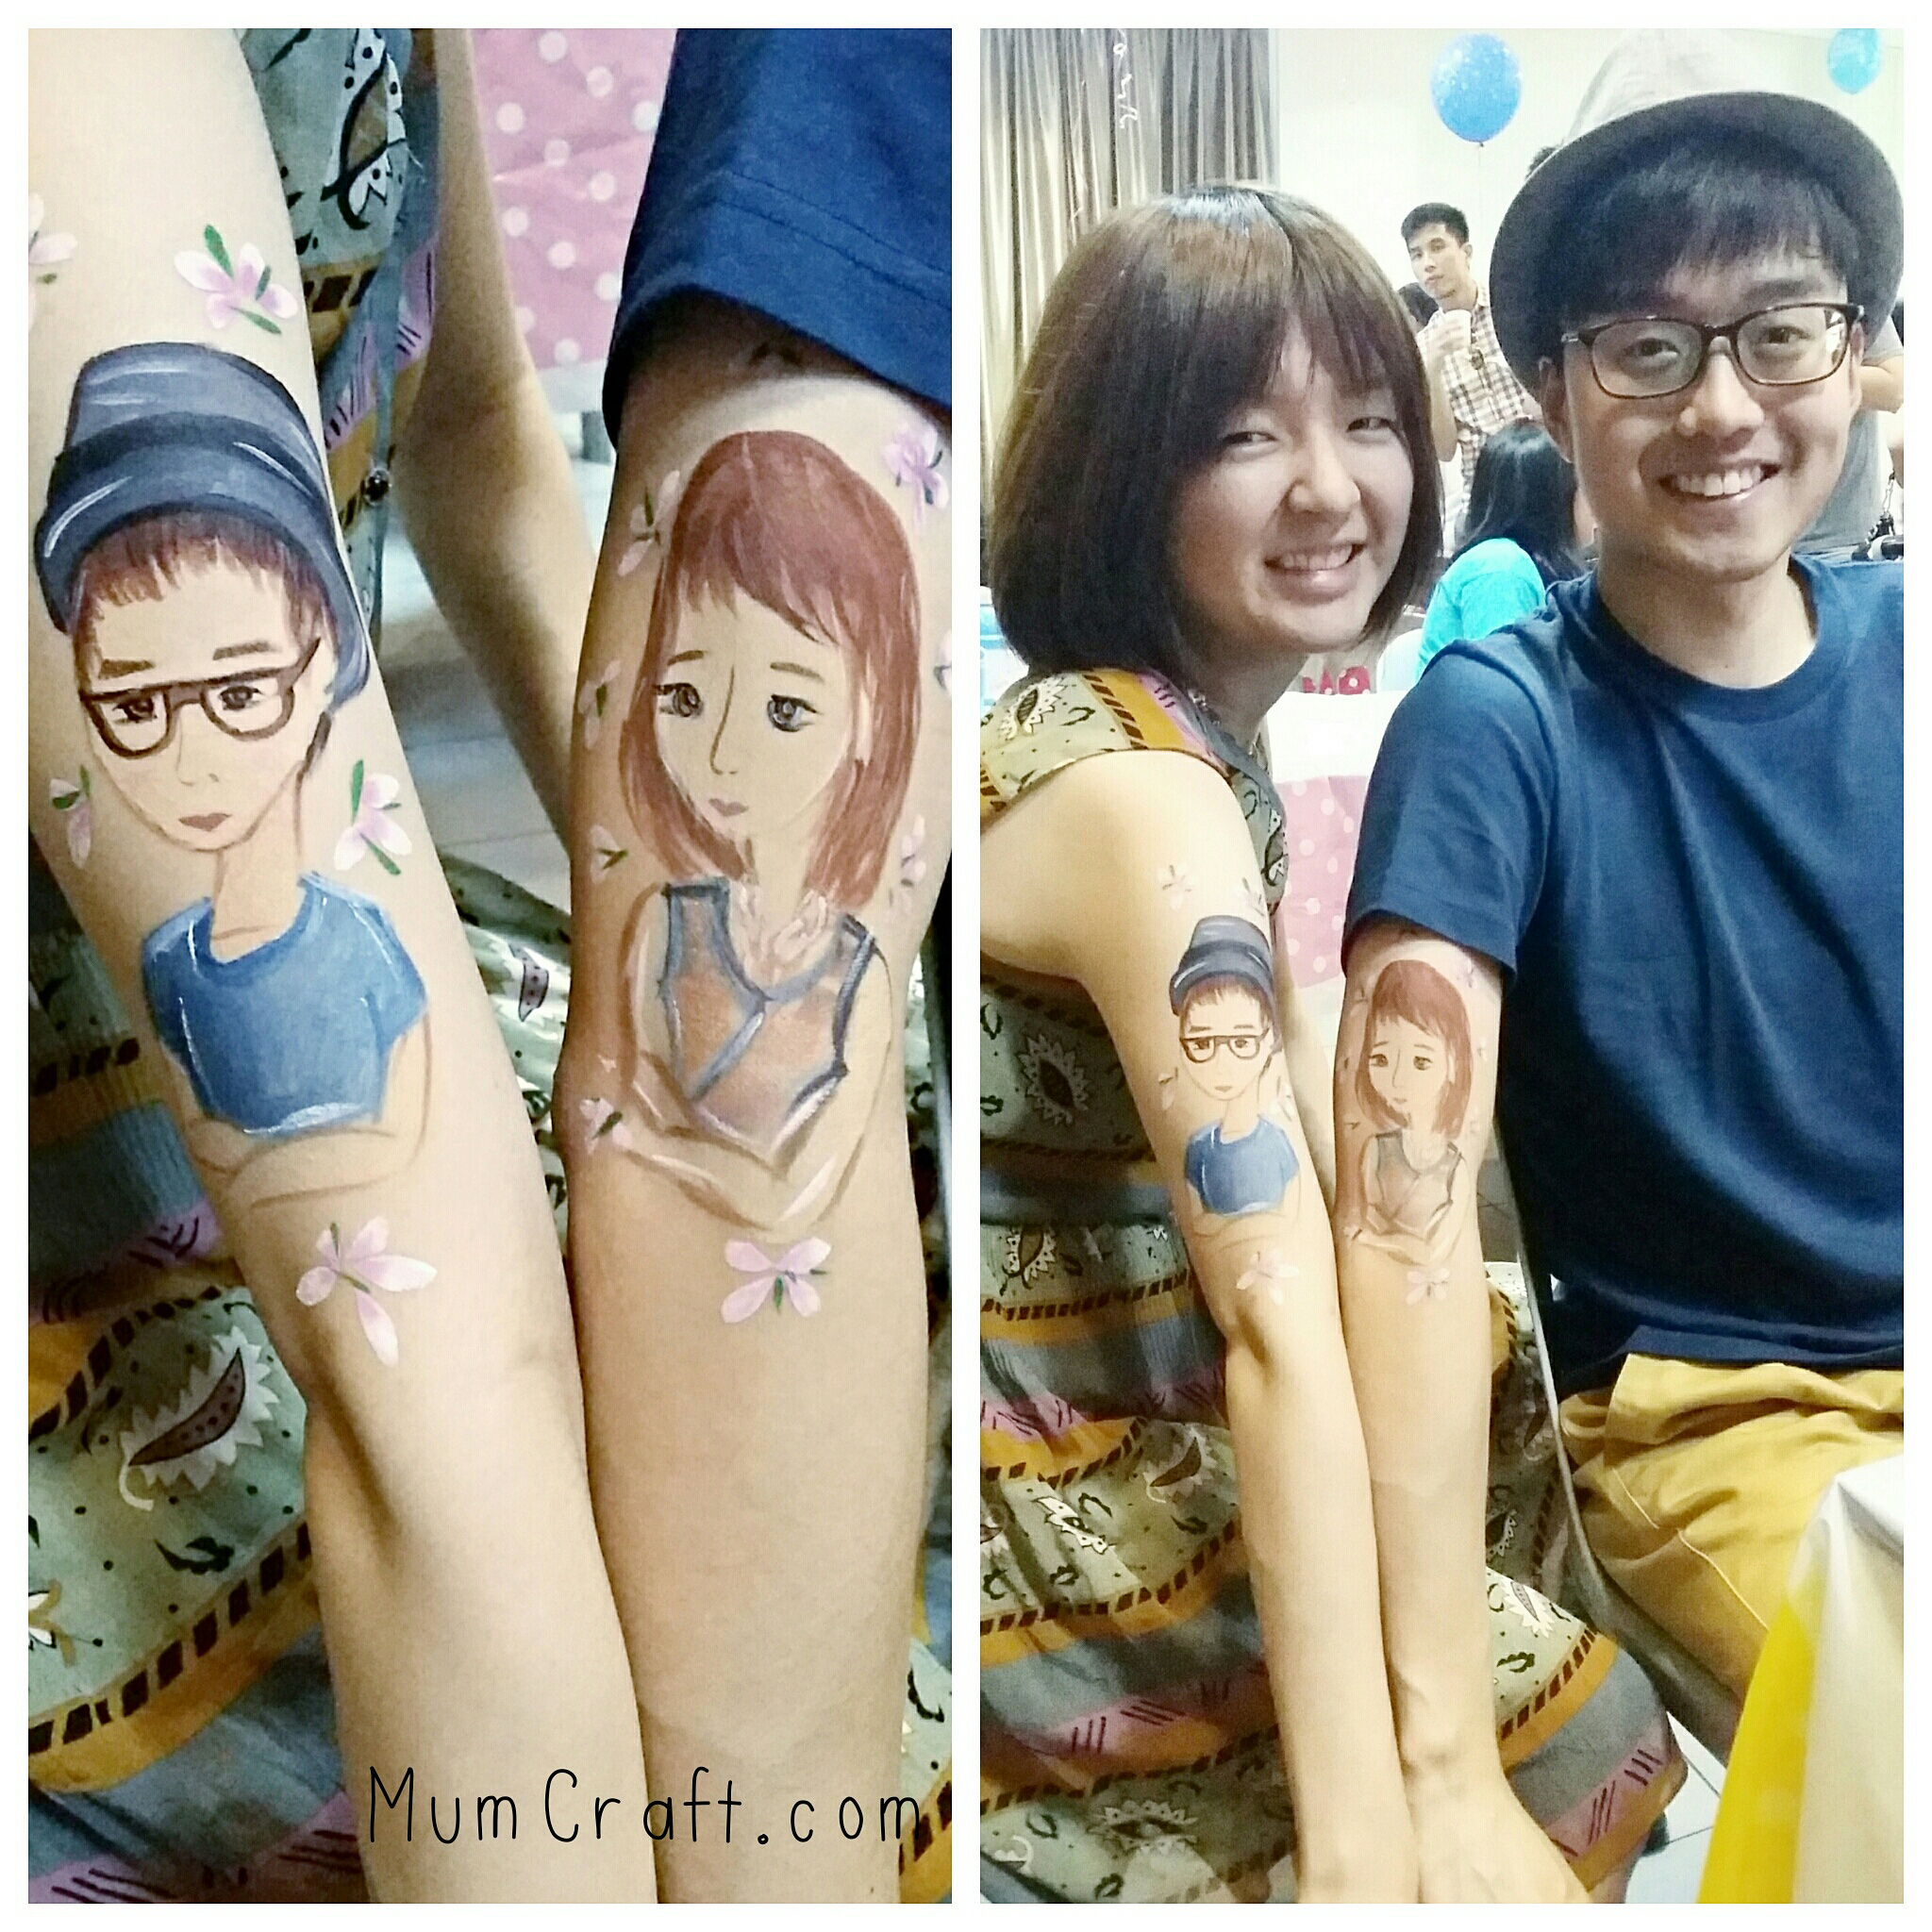 Super love this couple piece. This lovely pair newly-wed had each other painted on their arms as a symbol of their love.